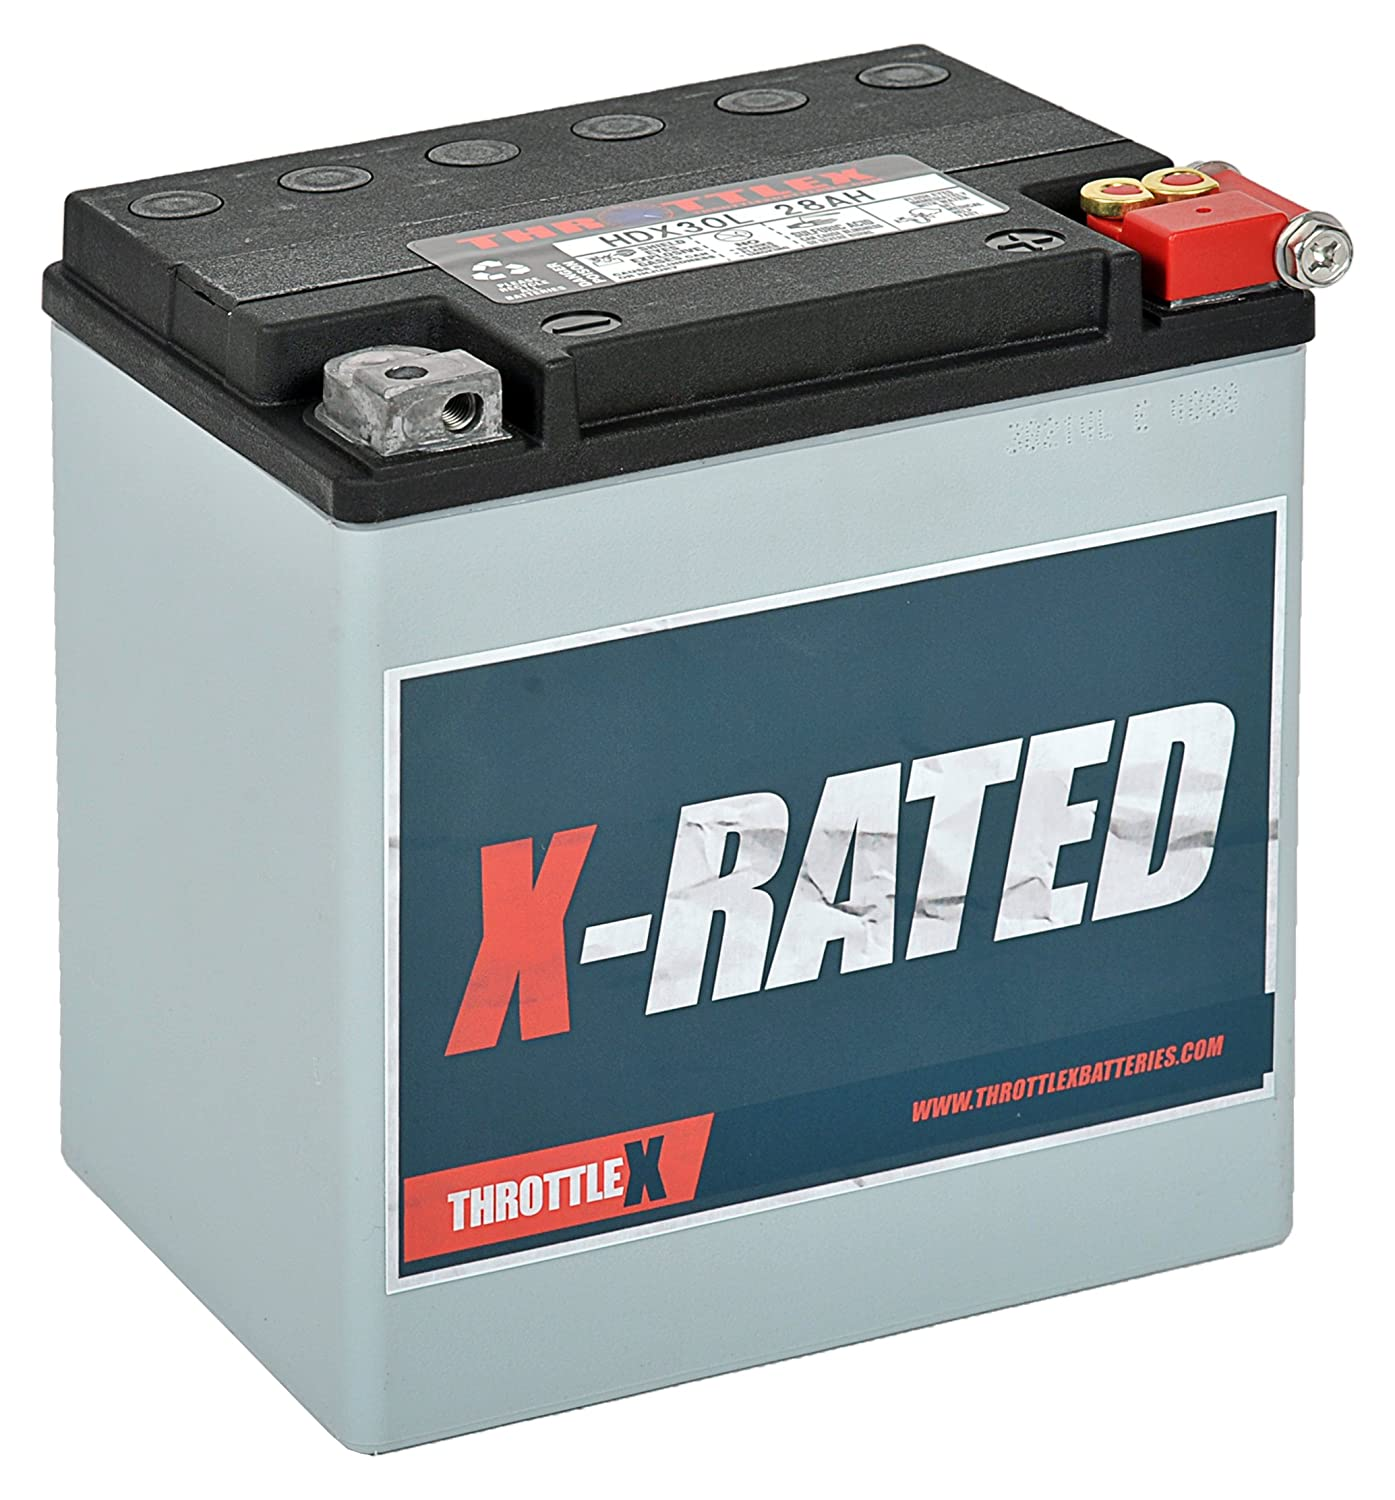 THROTTLEX HDX30L Replacement Motorcycle Battery}